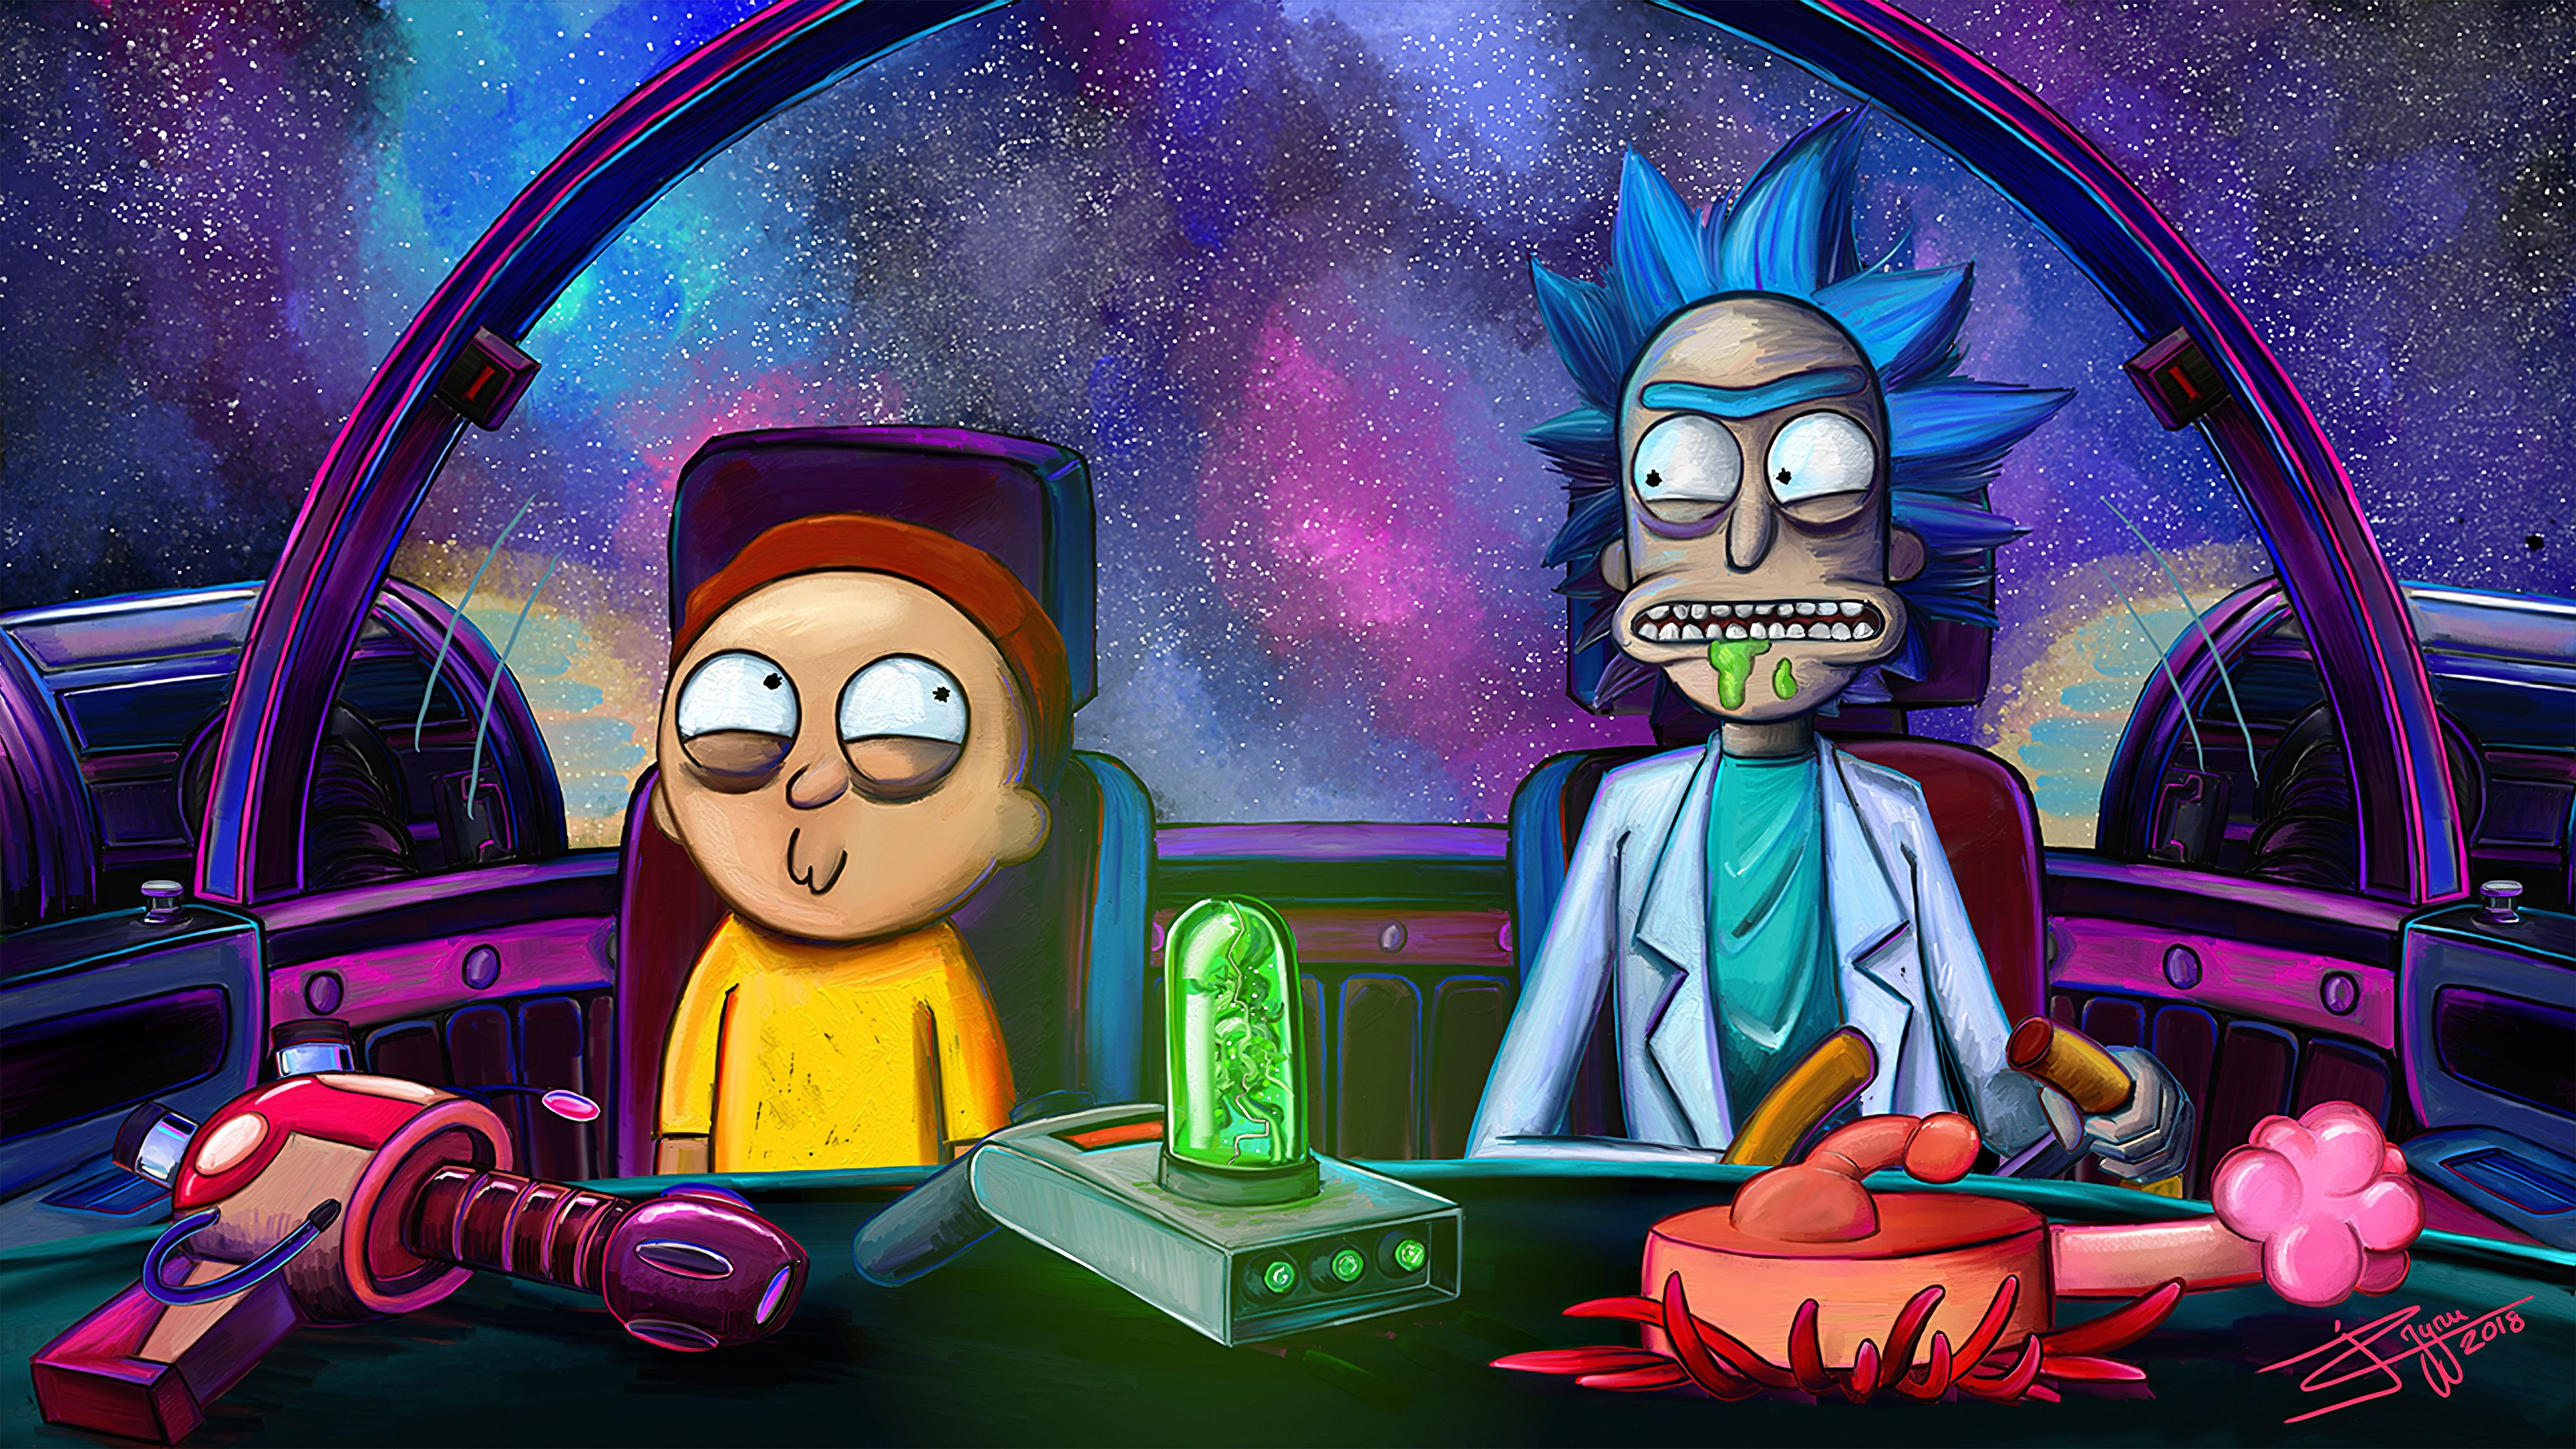 Pin By El Deadpul On Rick And Morty In 2020 Rick And Morty Poster Rick And Morty Rick And Morty Characters